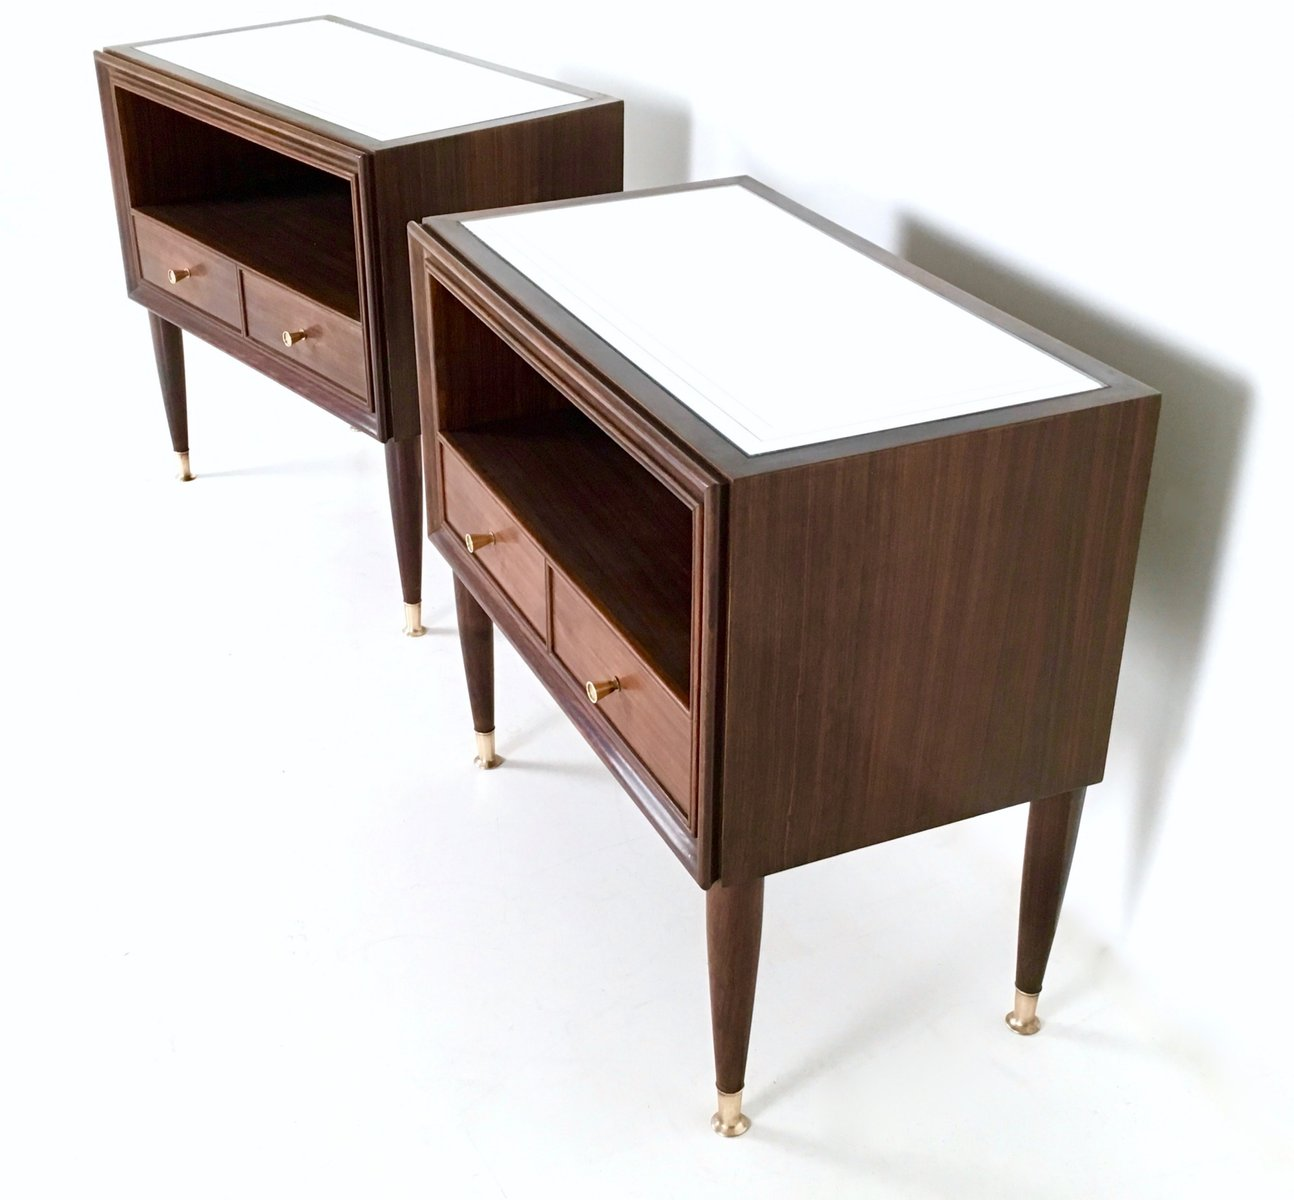 tables de chevet en acajou 1950s set de 2 en vente sur pamono. Black Bedroom Furniture Sets. Home Design Ideas